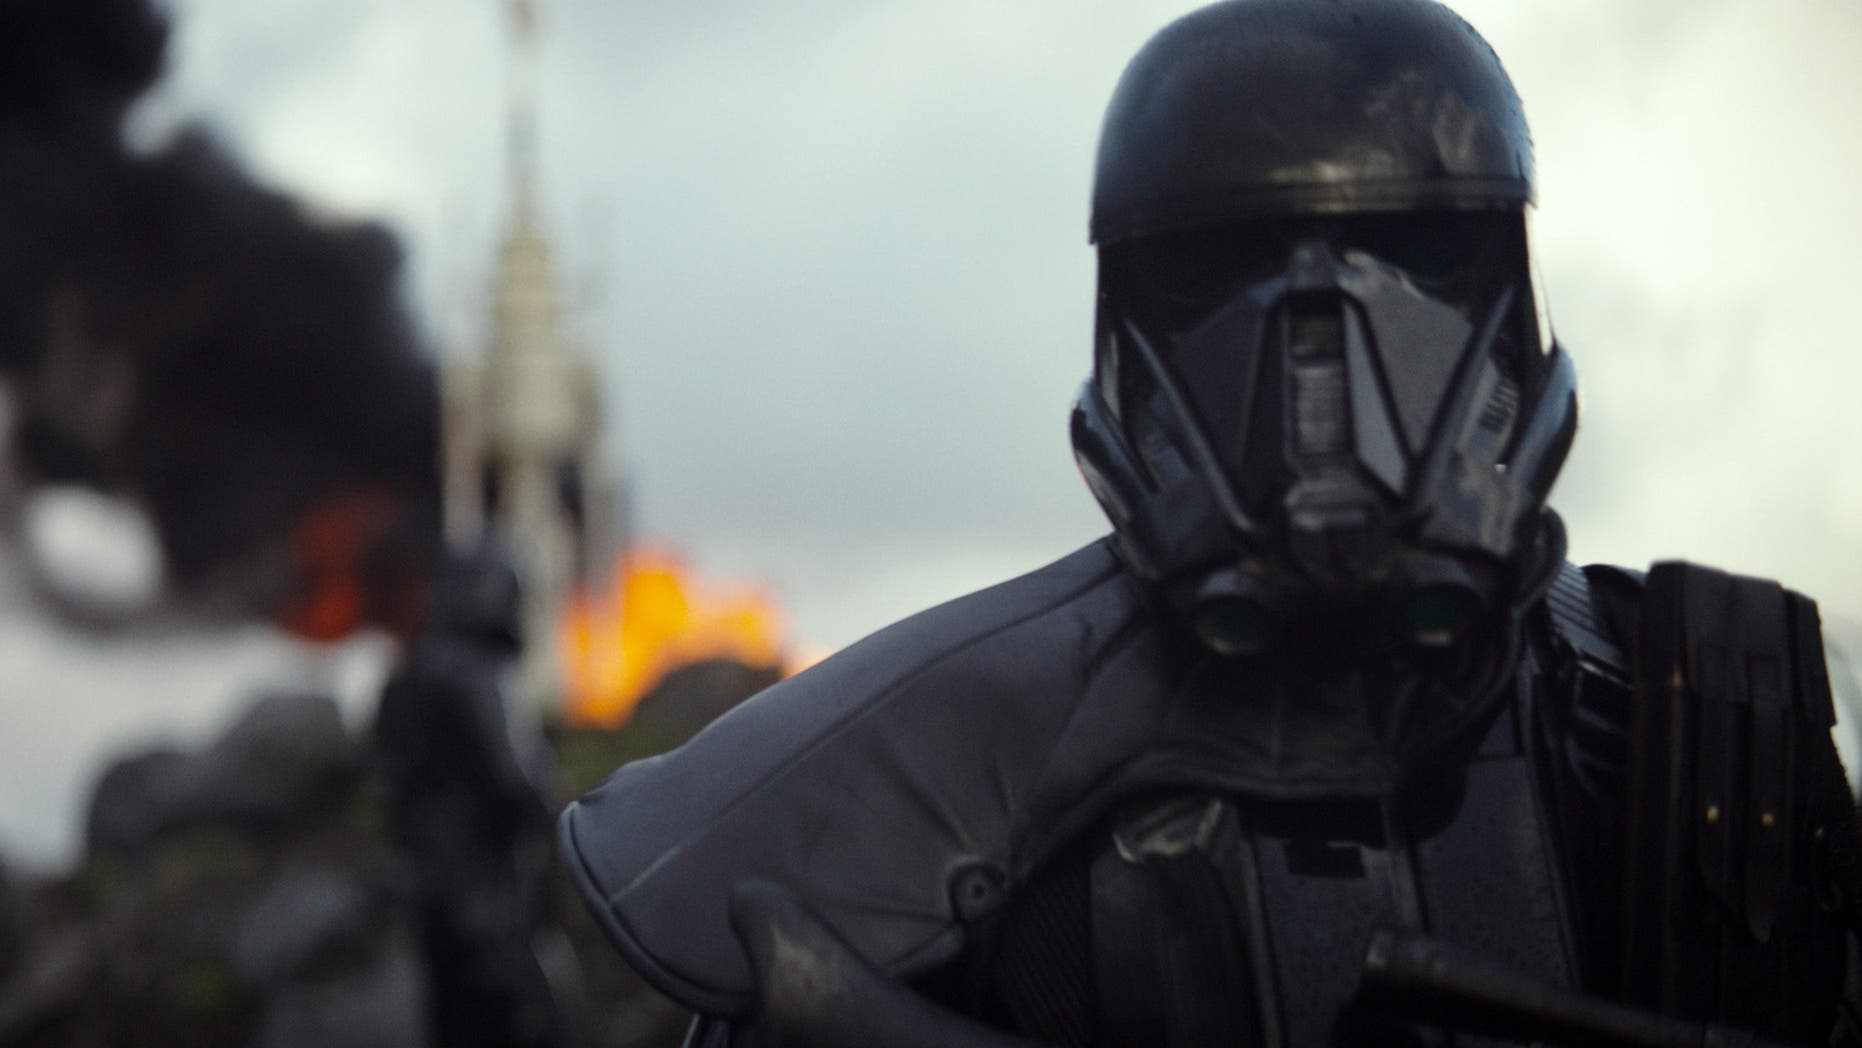 """This image released by Disney shows a scene from the upcoming film, """"Rogue One: A Star Wars Story."""" The world got a glimpse of """"Rogue One: A Star Wars Story"""" in teaser trailer that debuted Thursday, April 7, 2016 on Good Morning America that introduces the rag tag rebels who unite to steal the plans for the Death Star, including """"The Theory of Everything's"""" Felicity Jones. The film directed by Gareth Edwards also stars Diego Luna, Forest Whitaker and Ben Mendelsohn. (Disney via AP)"""